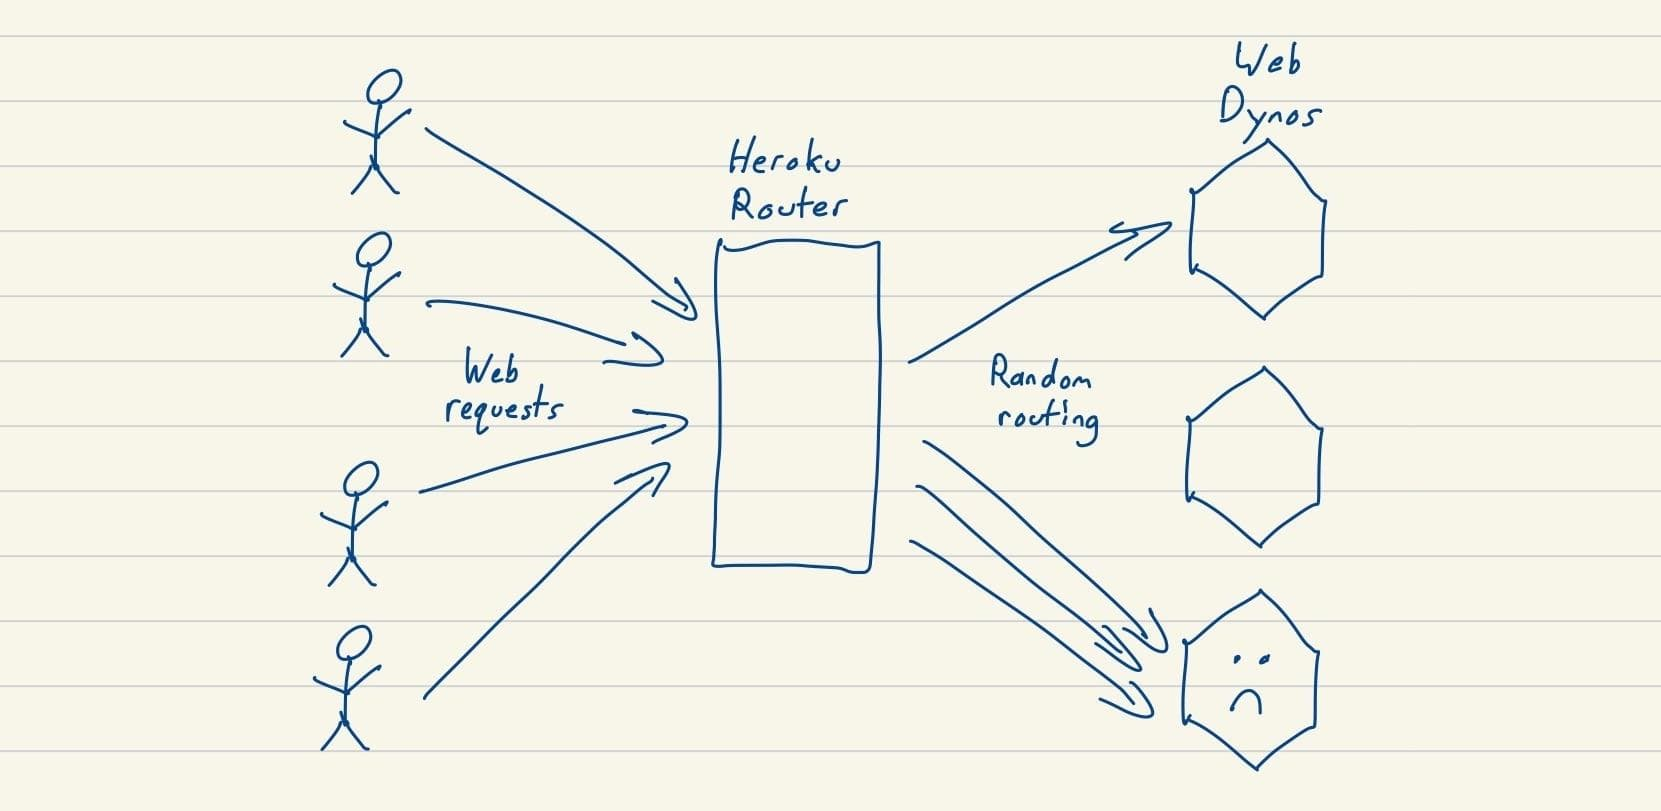 Heroku random routing